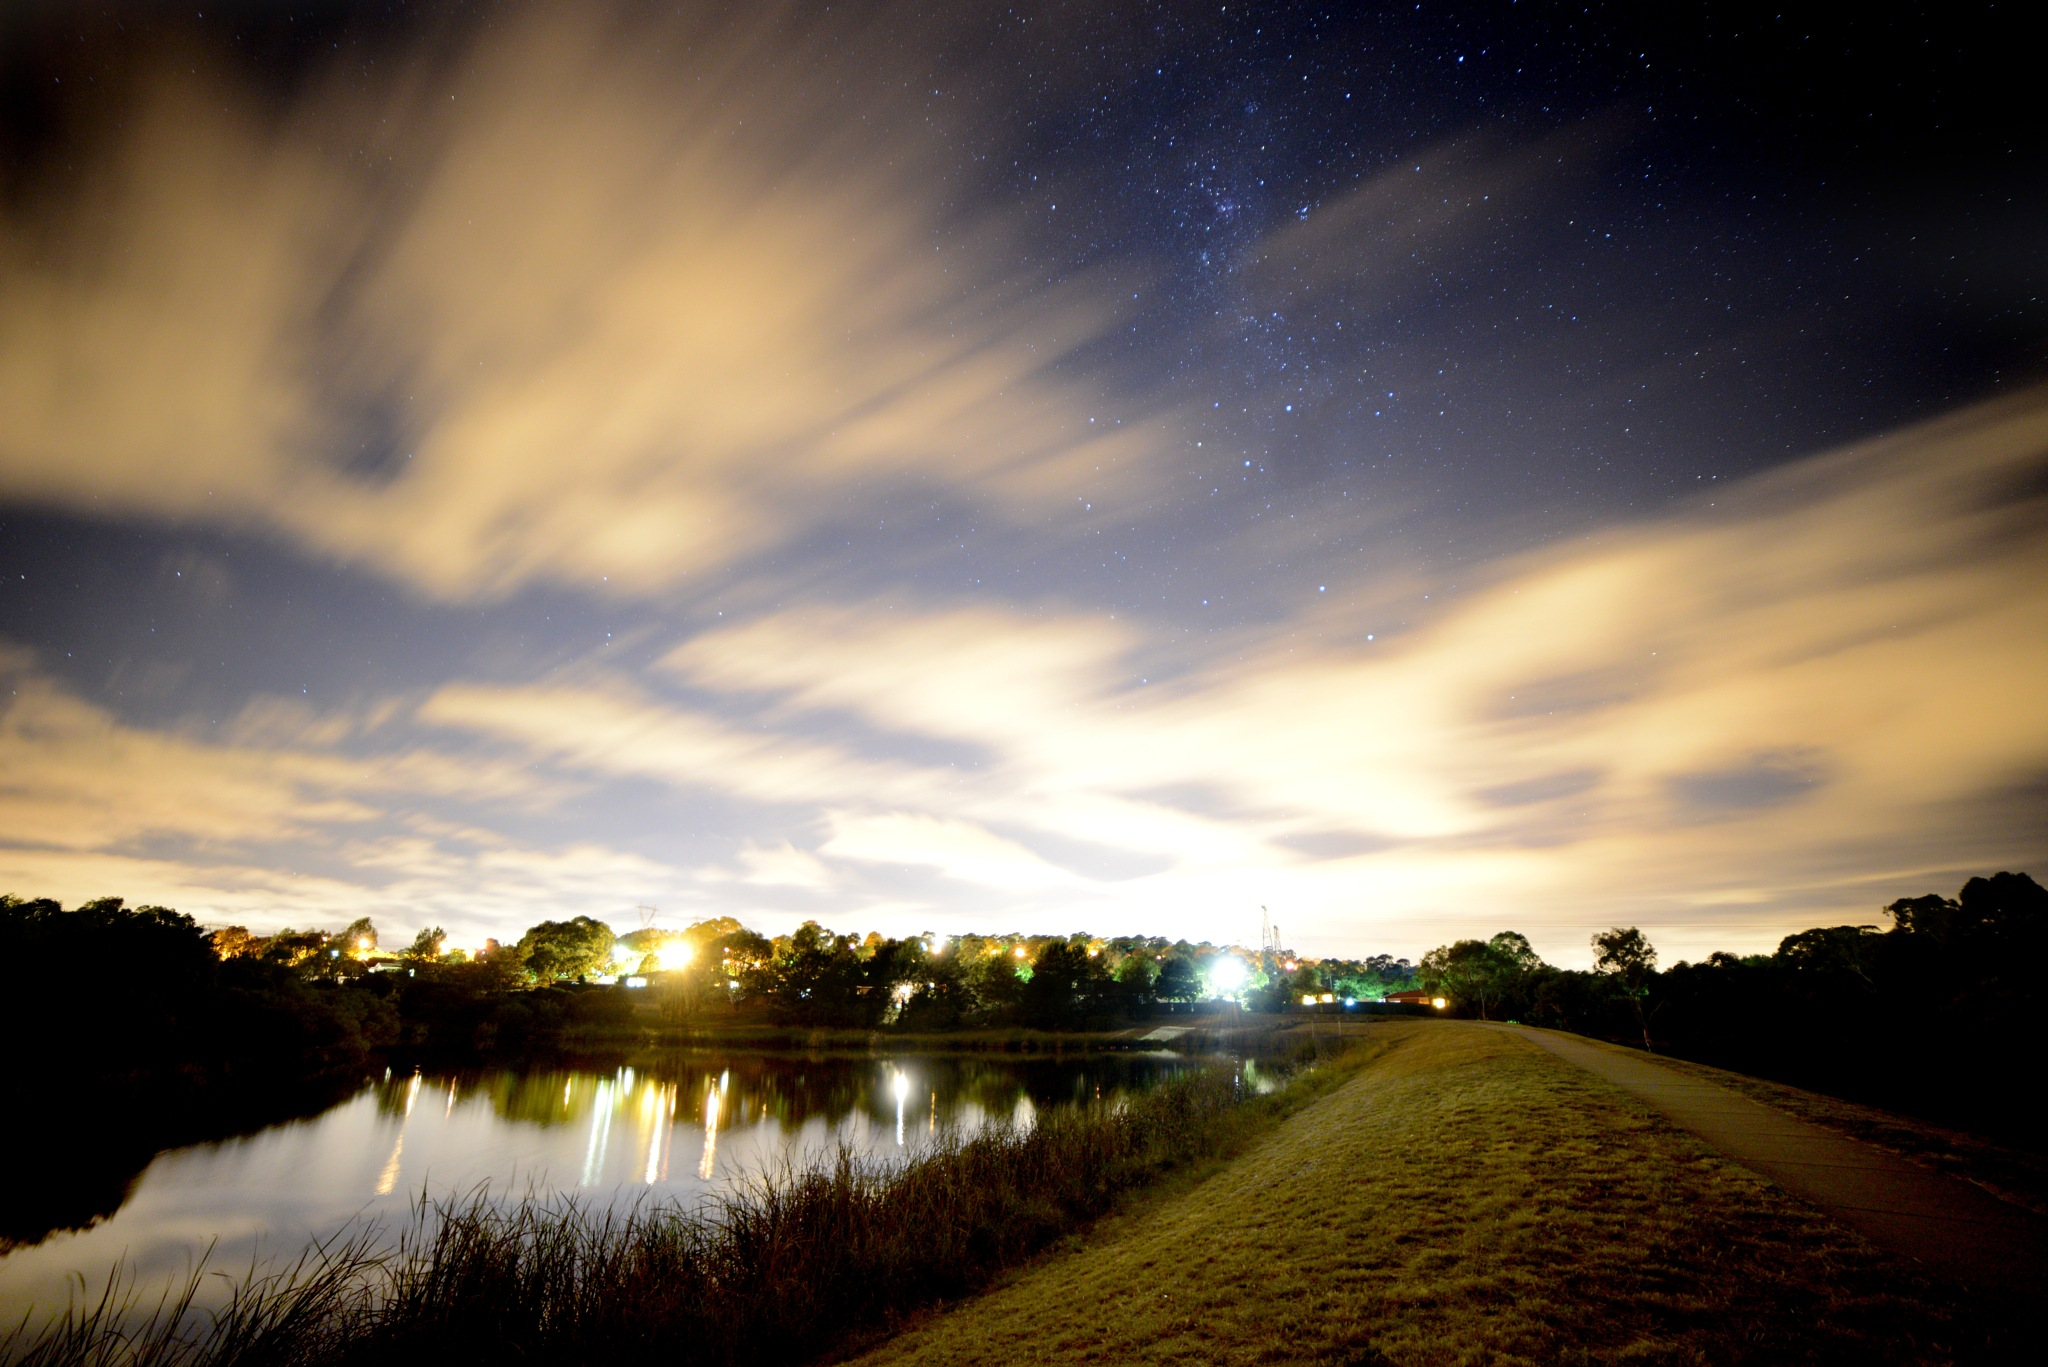 Fassifern Pond at Night with Stars and Clouds by Graham Levi